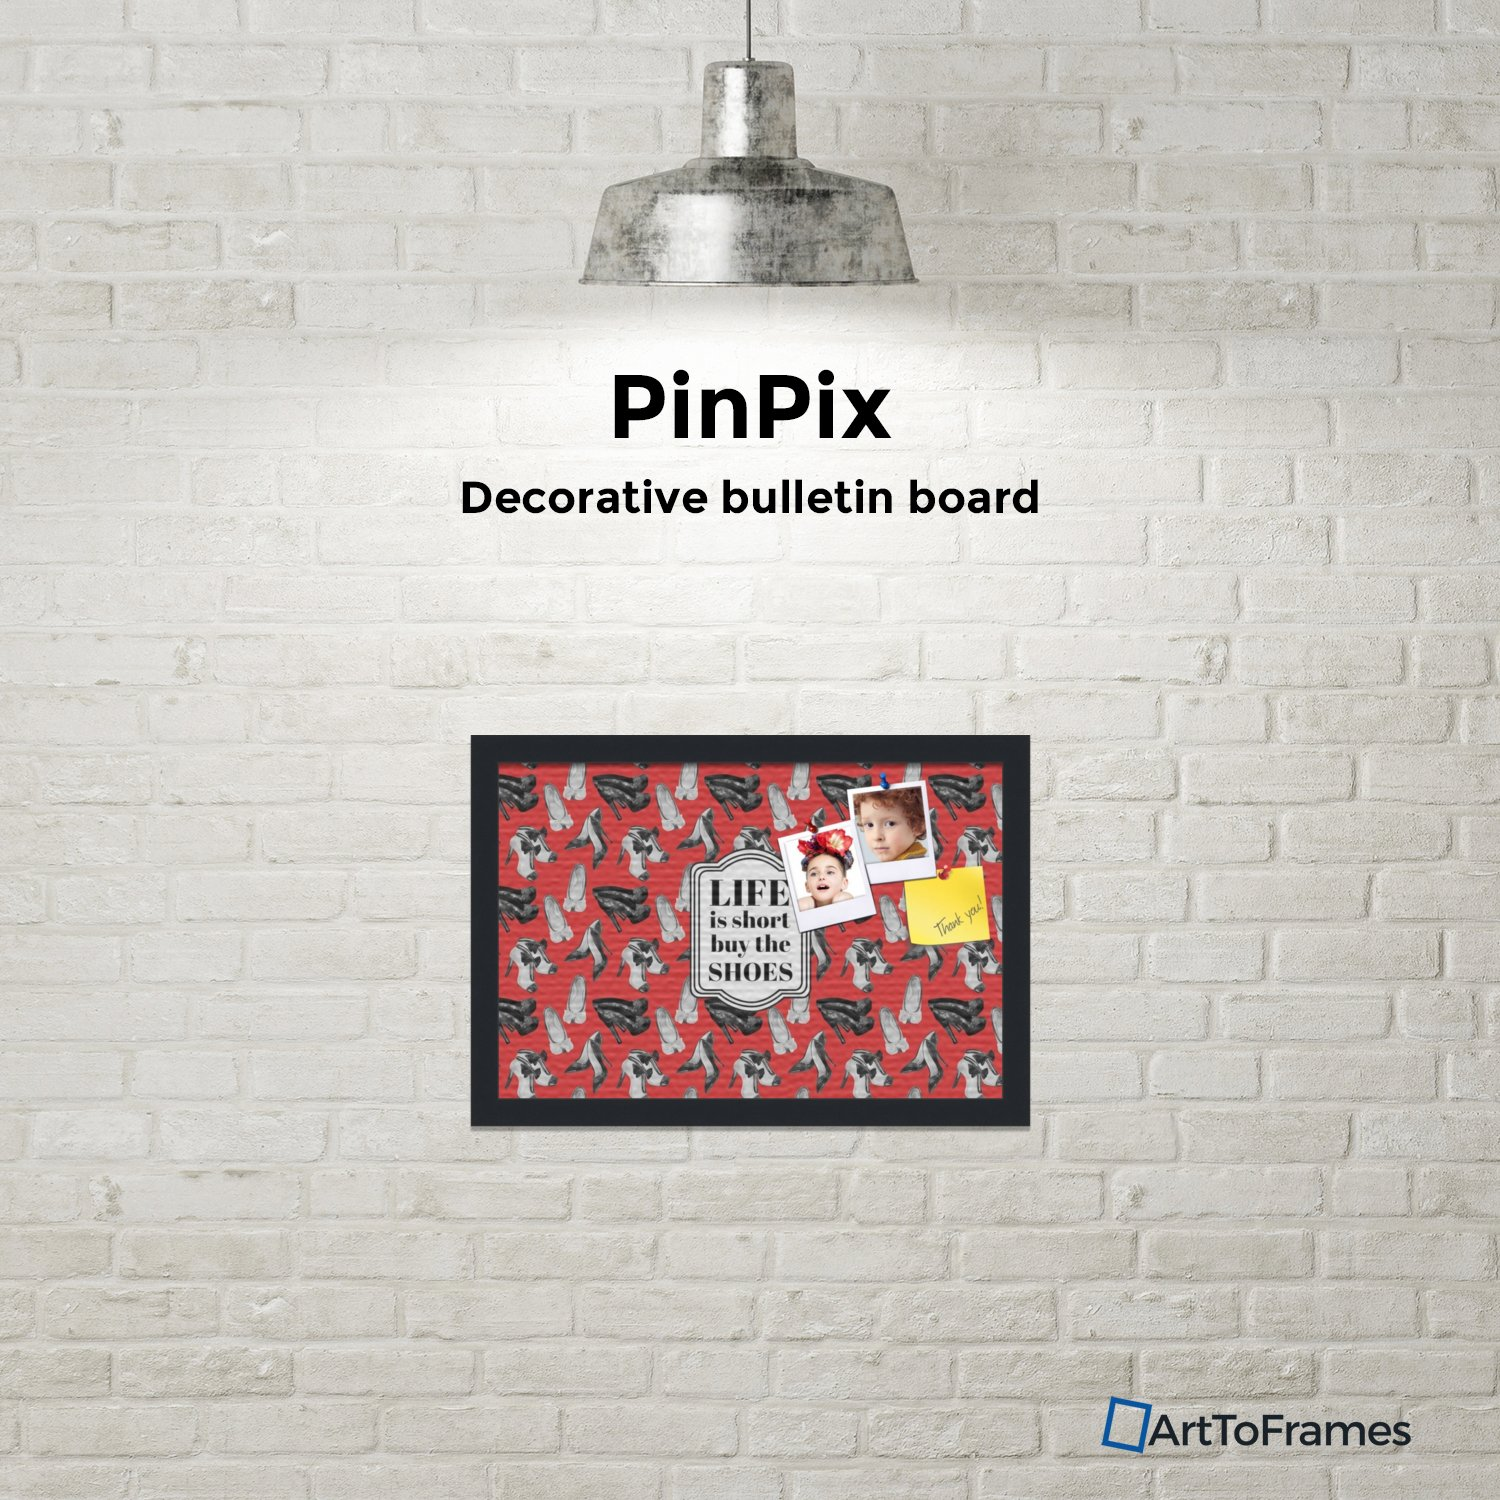 PinPix custom printed pin cork bulletin board made from canvas, Buy The Shoes 18x12 Inches (Completed Size) and framed in Satin Black (PinPix-Group-55) by PinPix (Image #3)